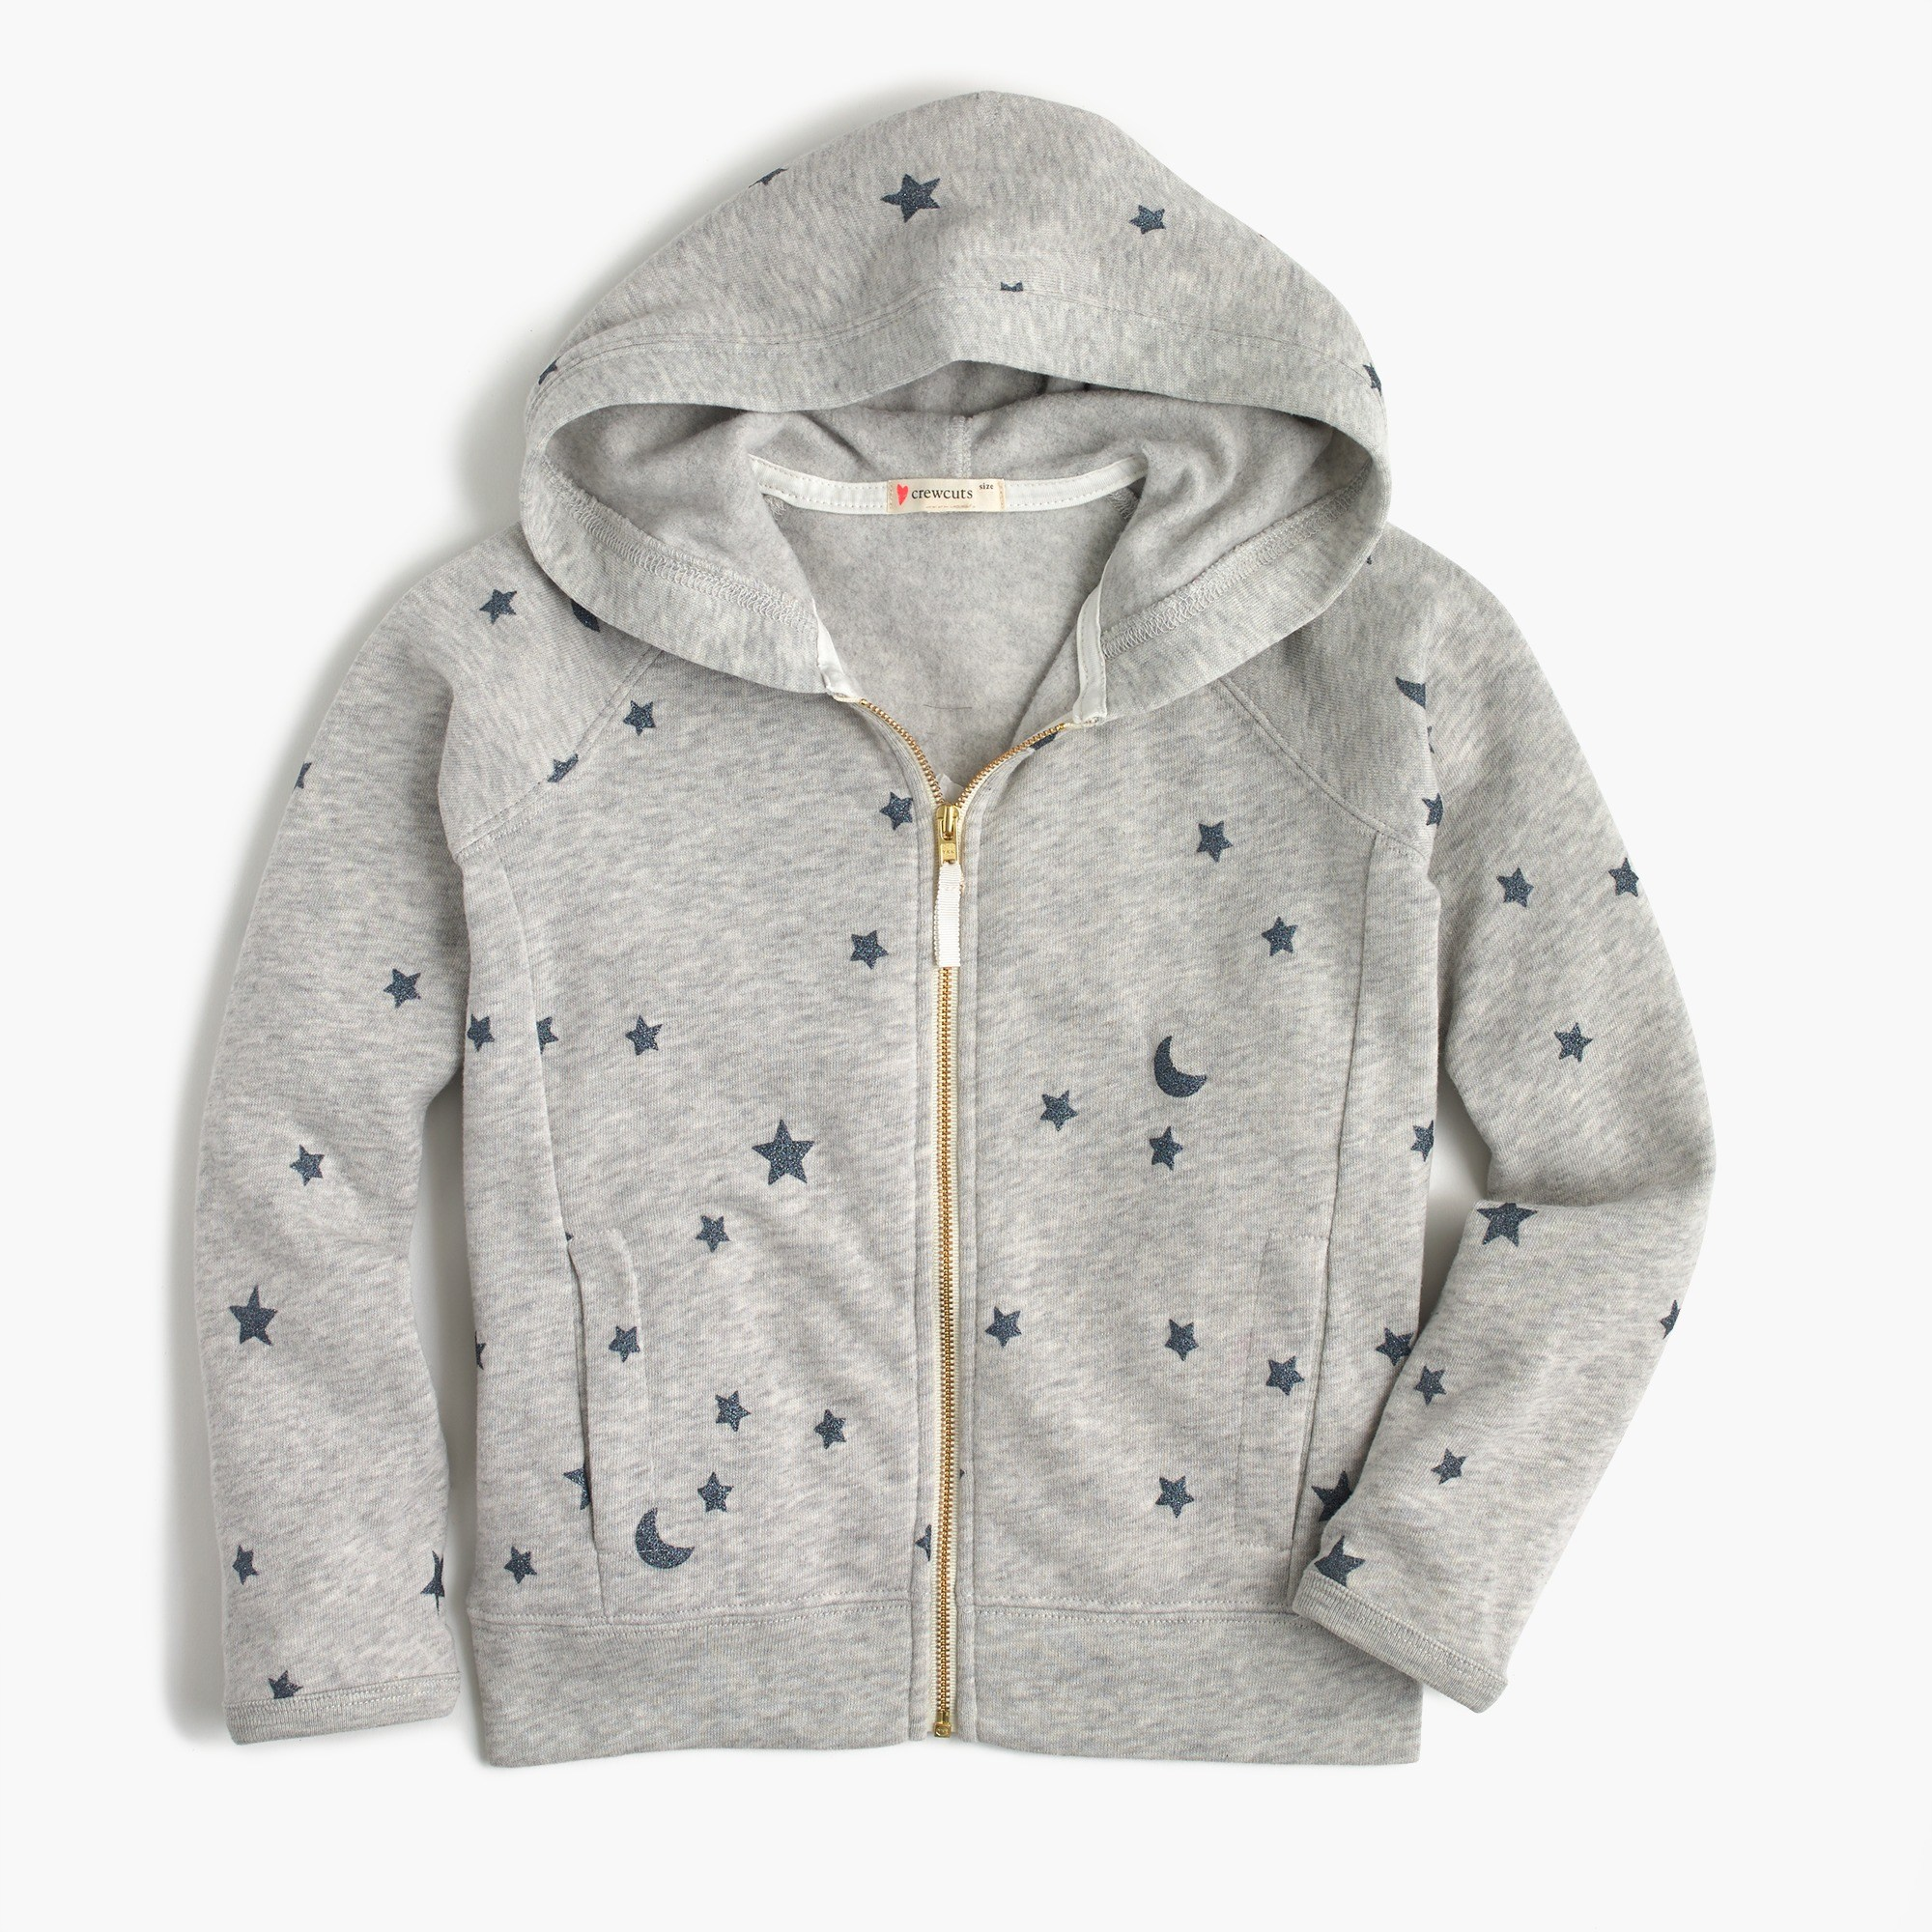 Girls' full-zip hoodie in stars : Girl sweatshirts | J.Crew